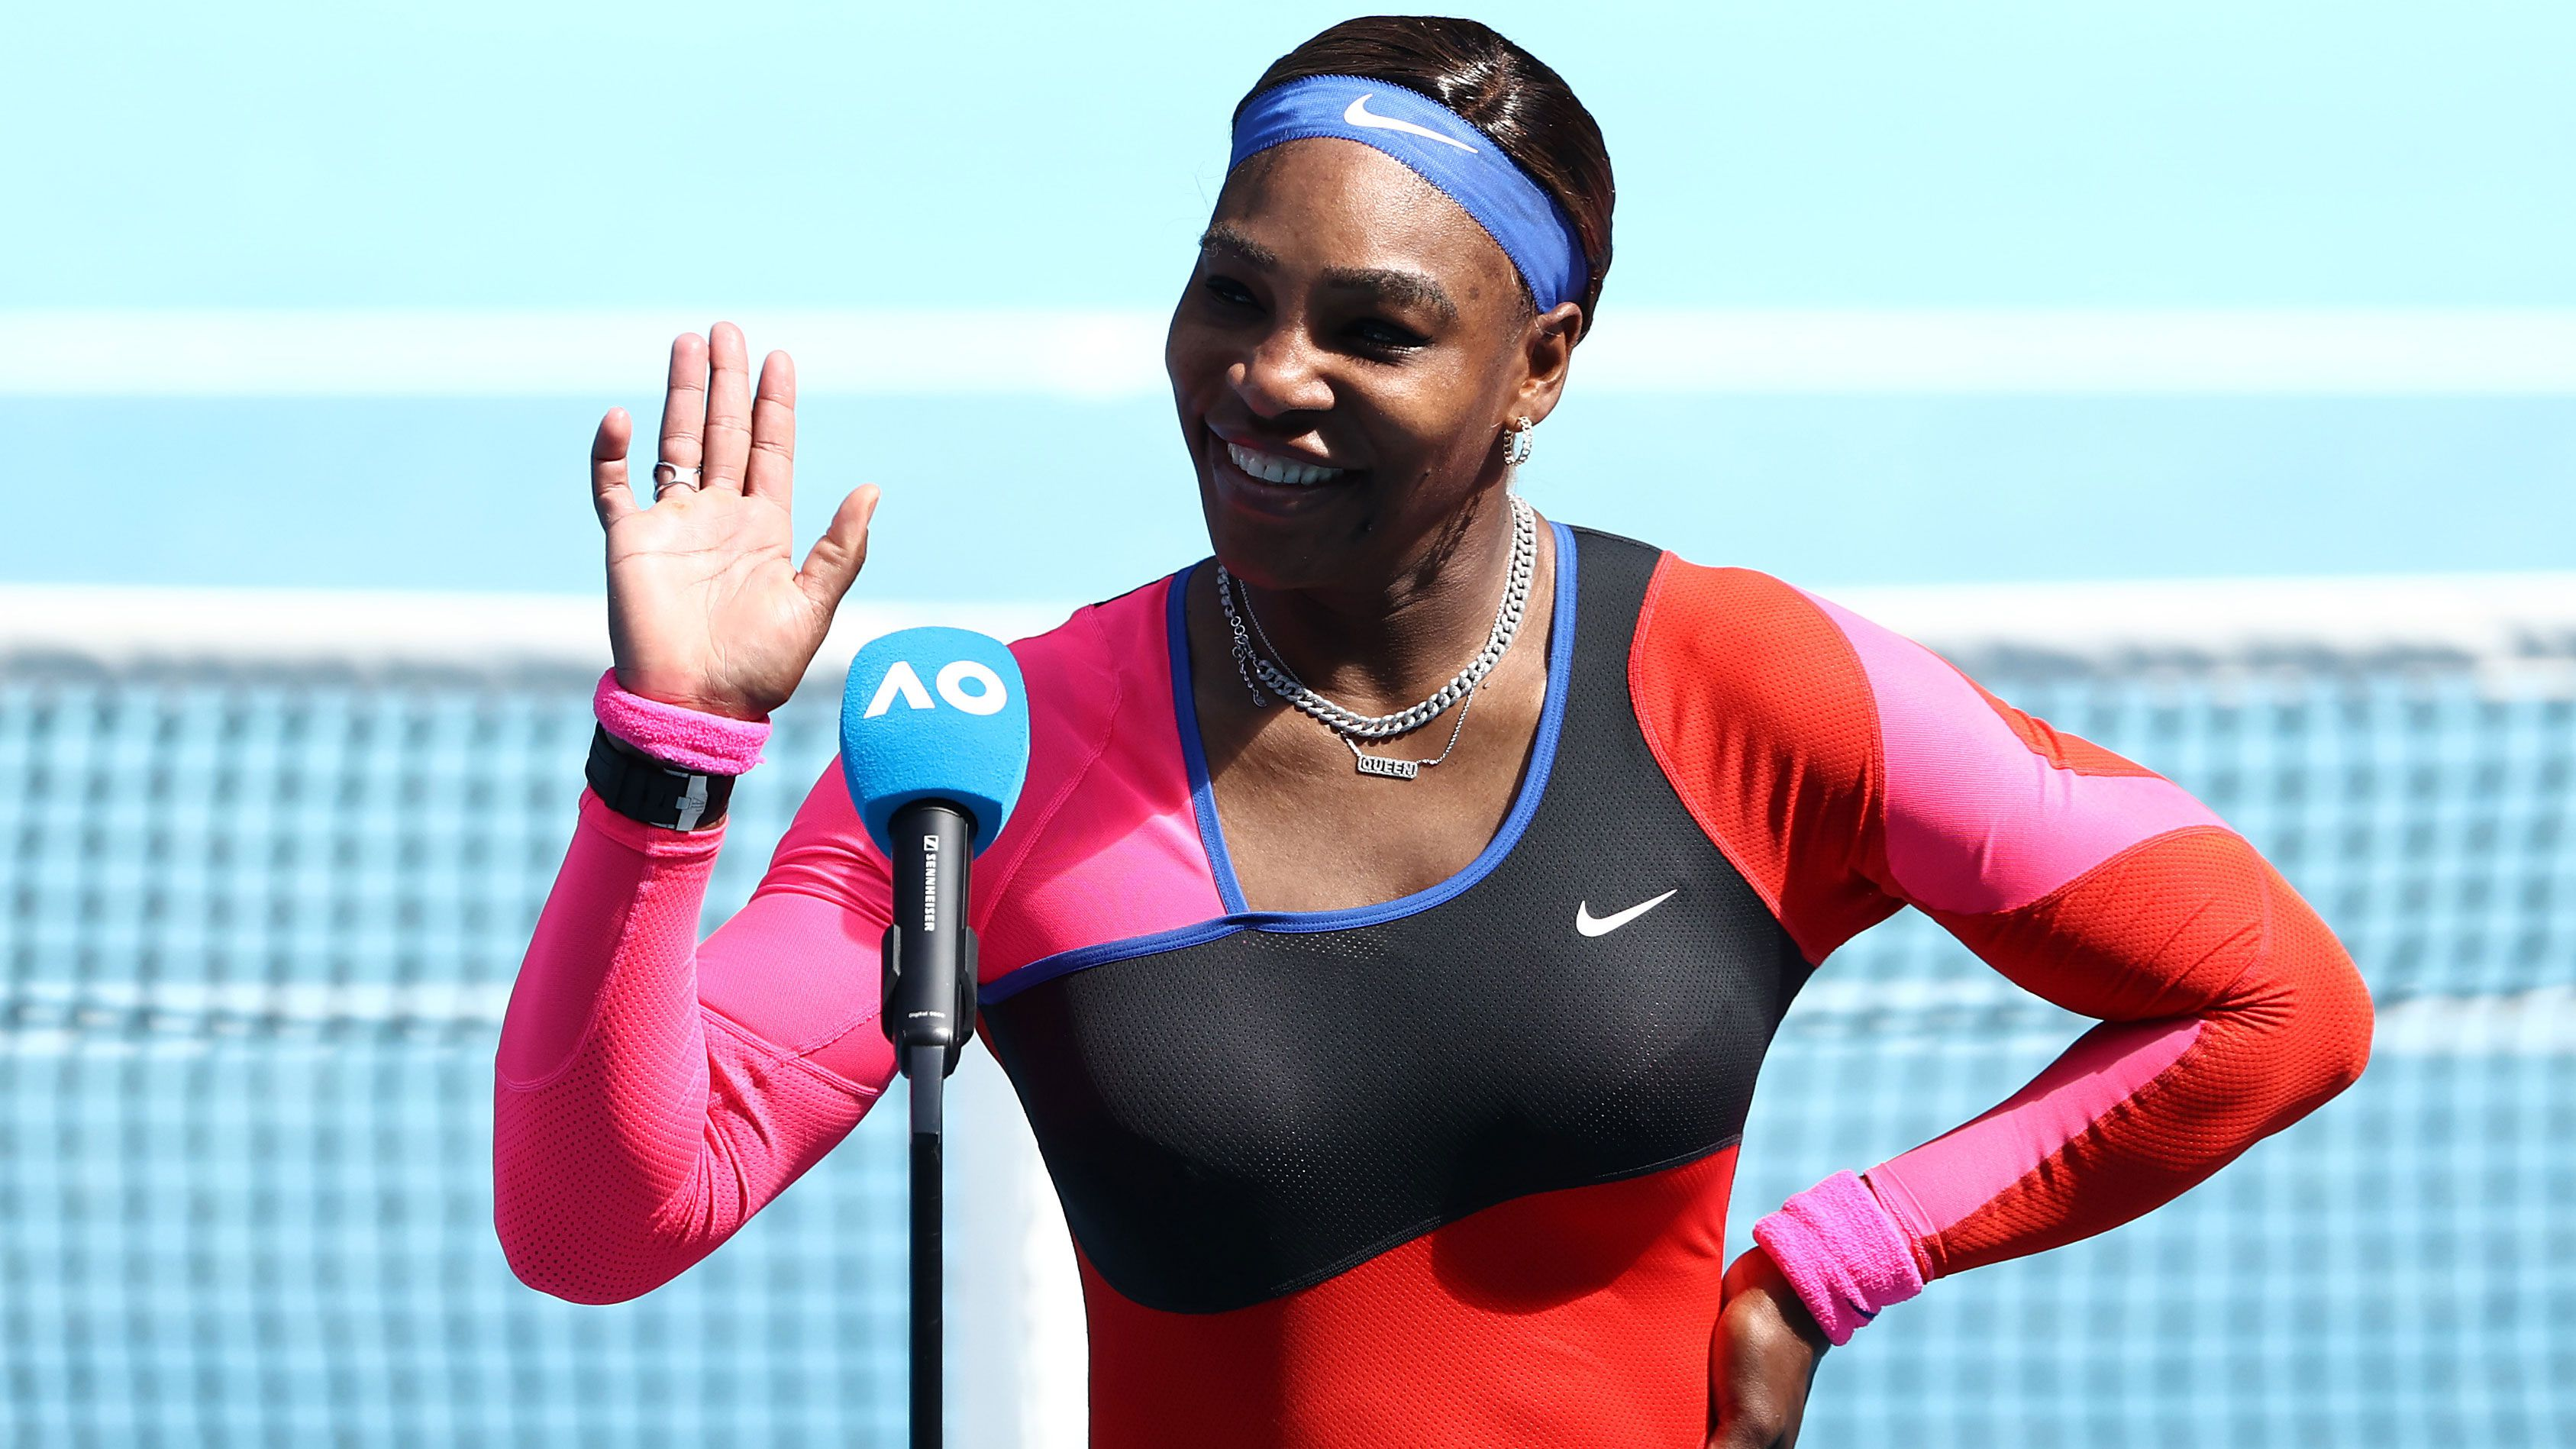 Serena Williams in her on-court interview after winning her Australian Open fourth round match.